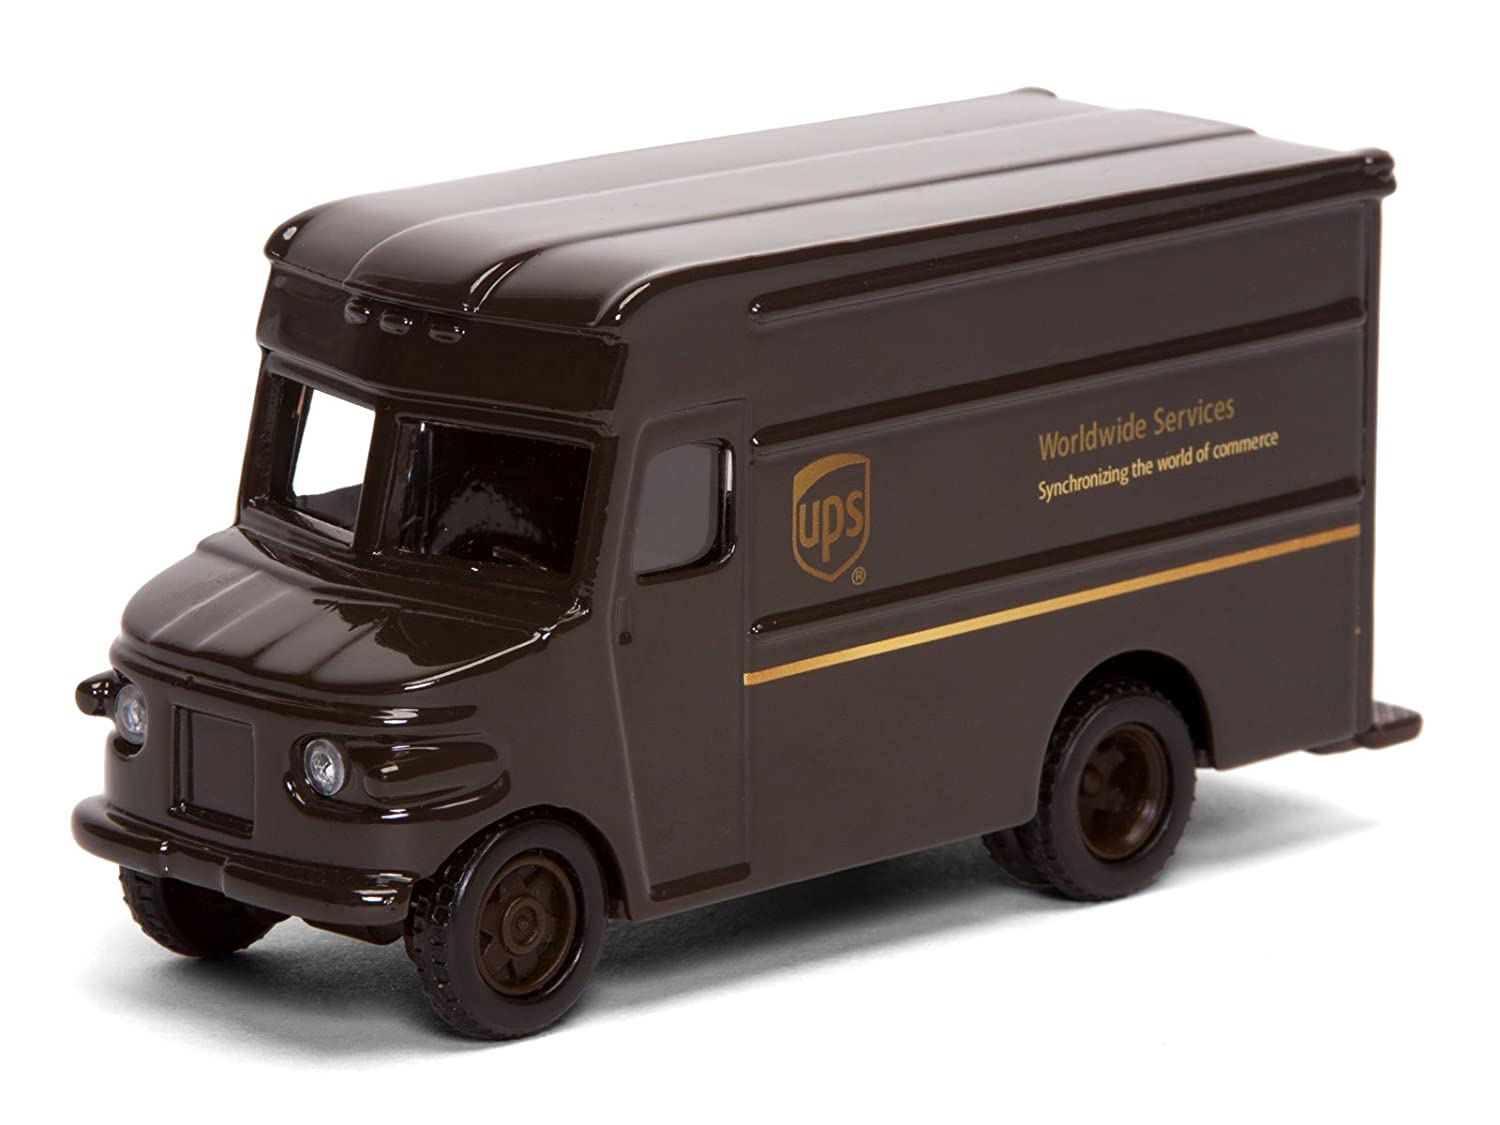 Amazon.com: UPS Delivery Die Cast Truck 1:55 Scale: Toys & Games